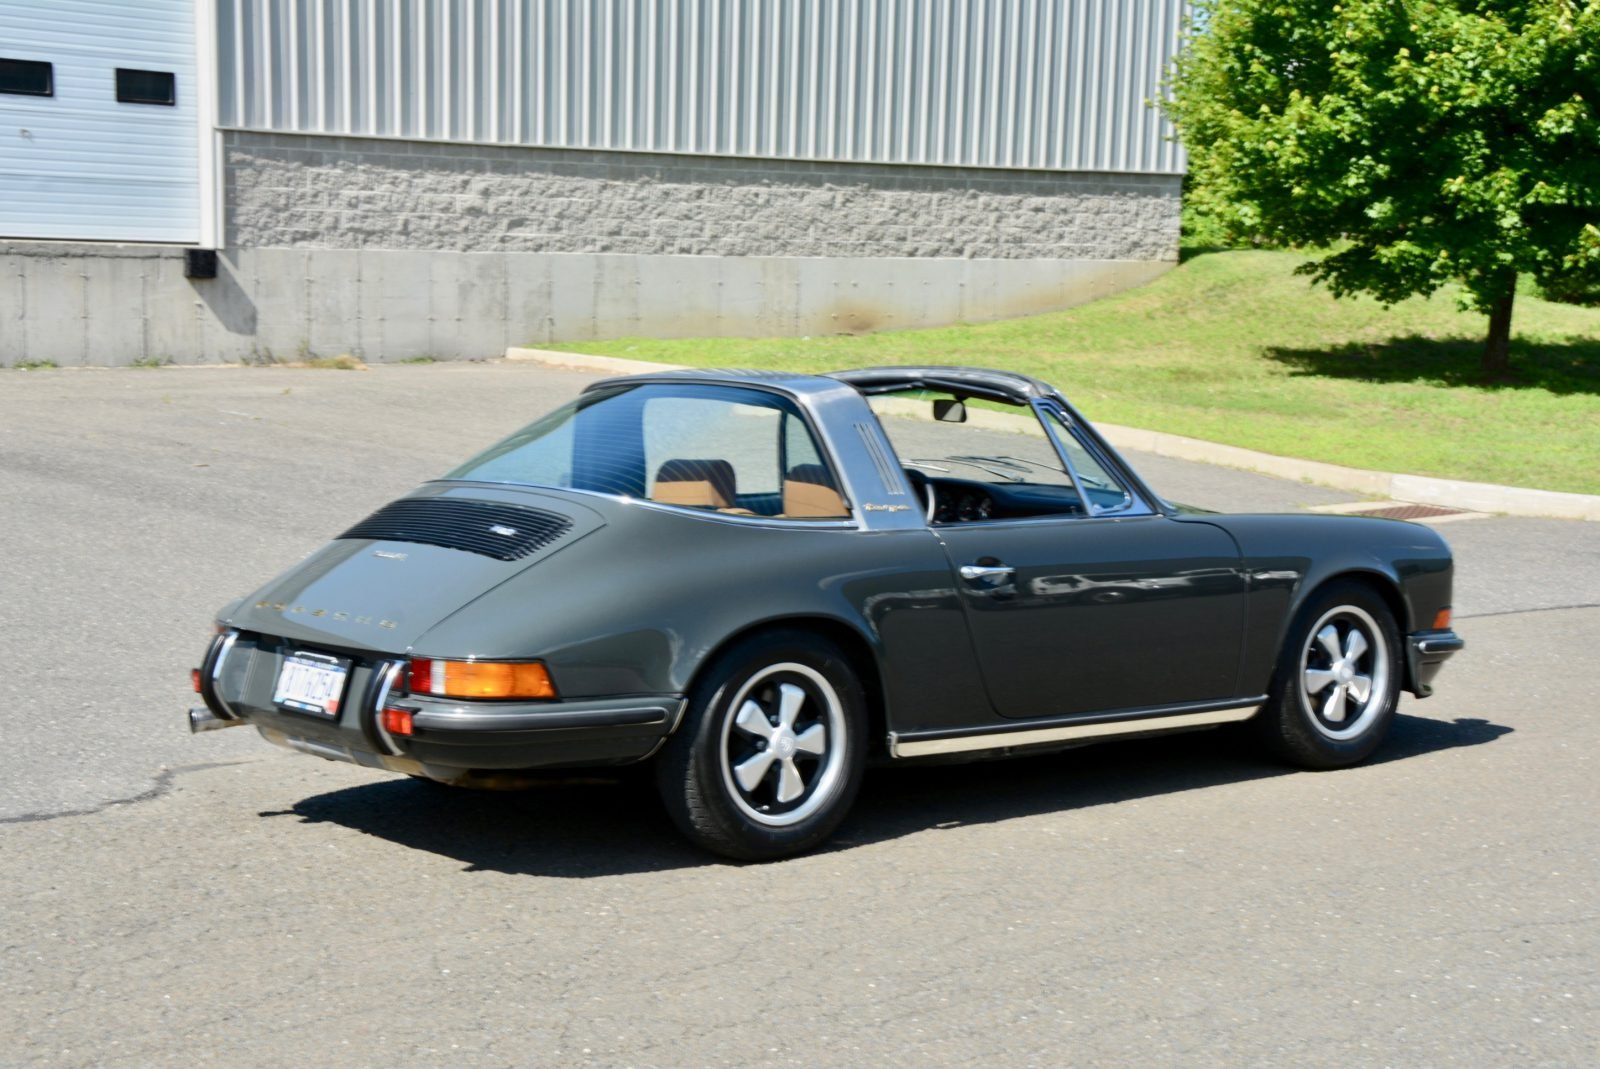 1973 Porsche 911 E Targa 2.4 = clean Gray(~)Tan $119.9k For Sale (picture 2 of 6)